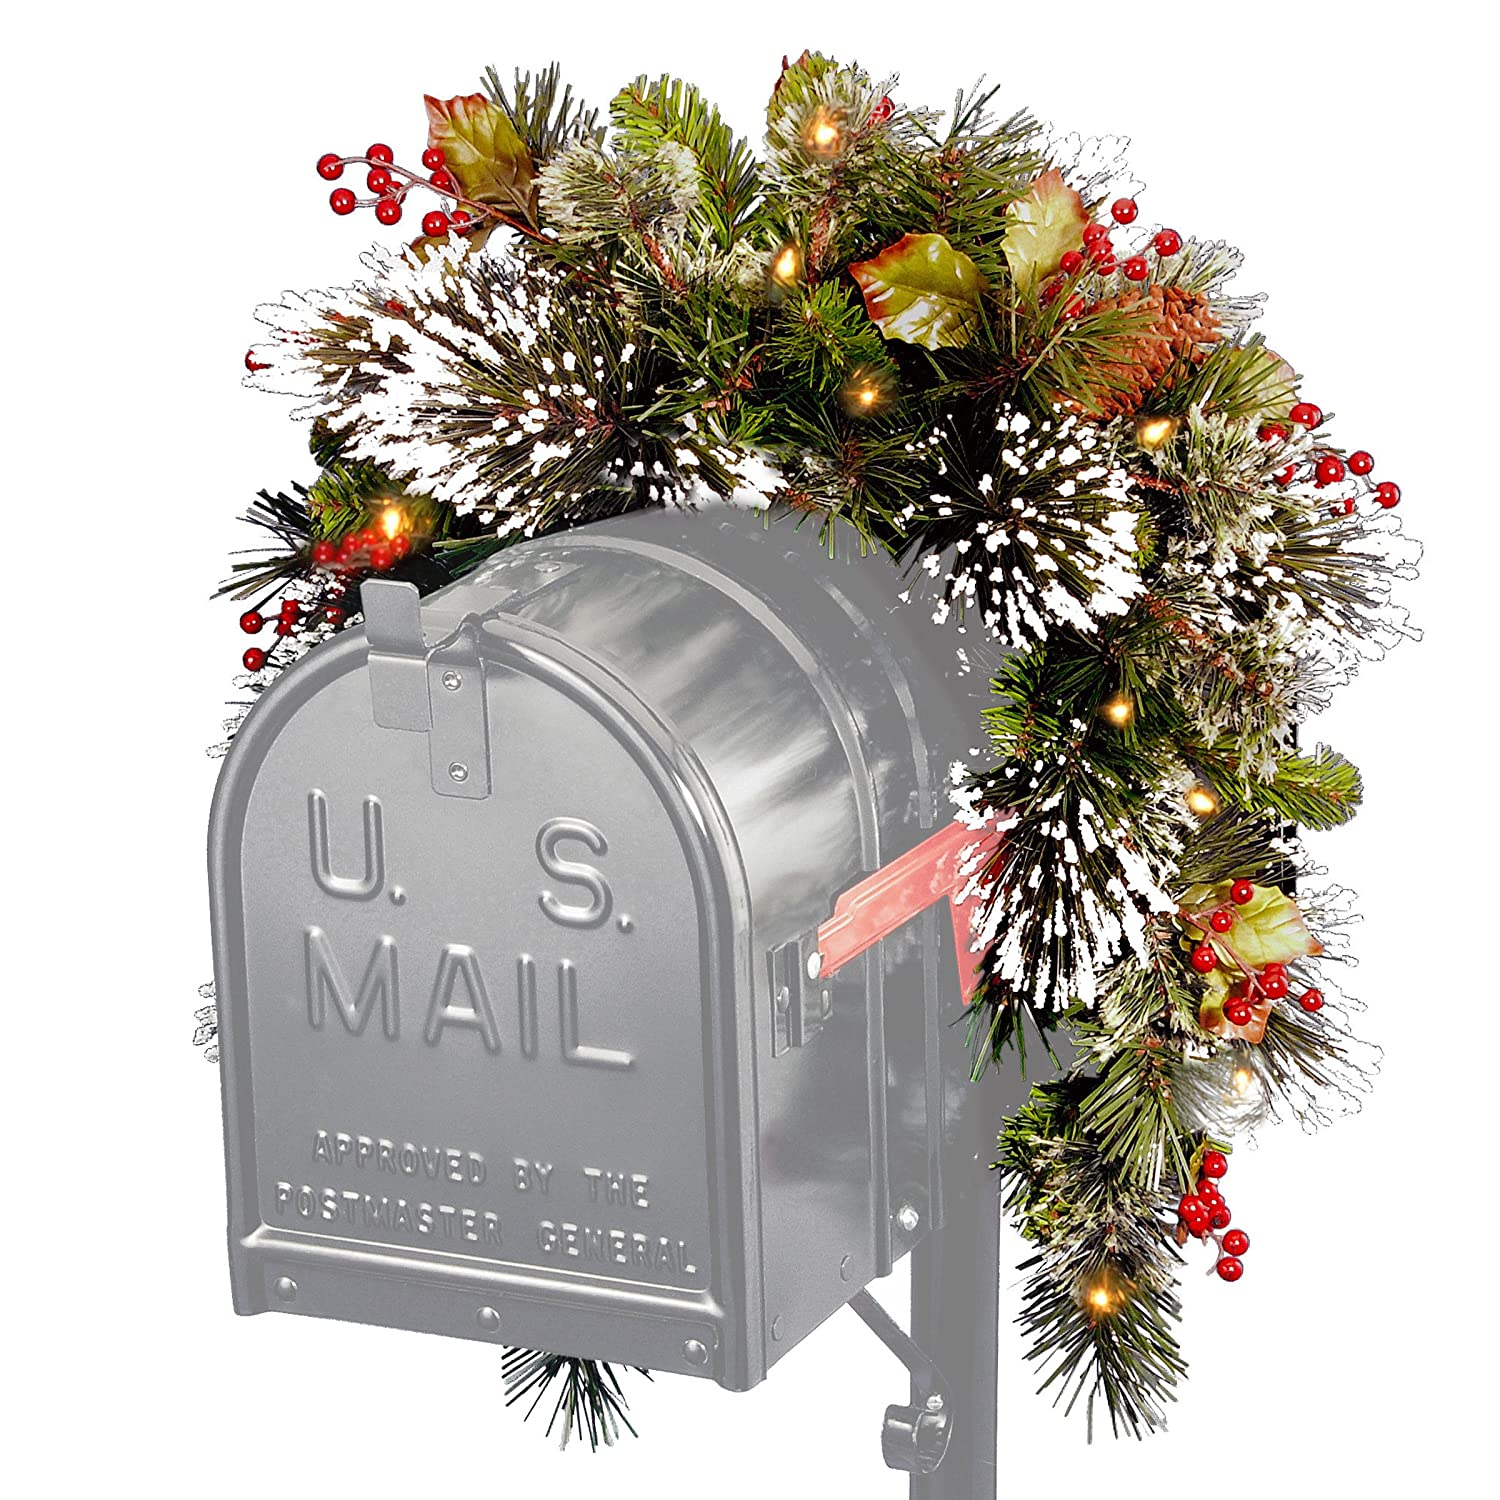 National Tree 3 Foot Wintry Pine Collection Mailbox Swag with Cones, Red Berries, Snowflakes and 15 Battery Operated Soft White LED Lights (WP1-300-3MB-1) National Tree Company